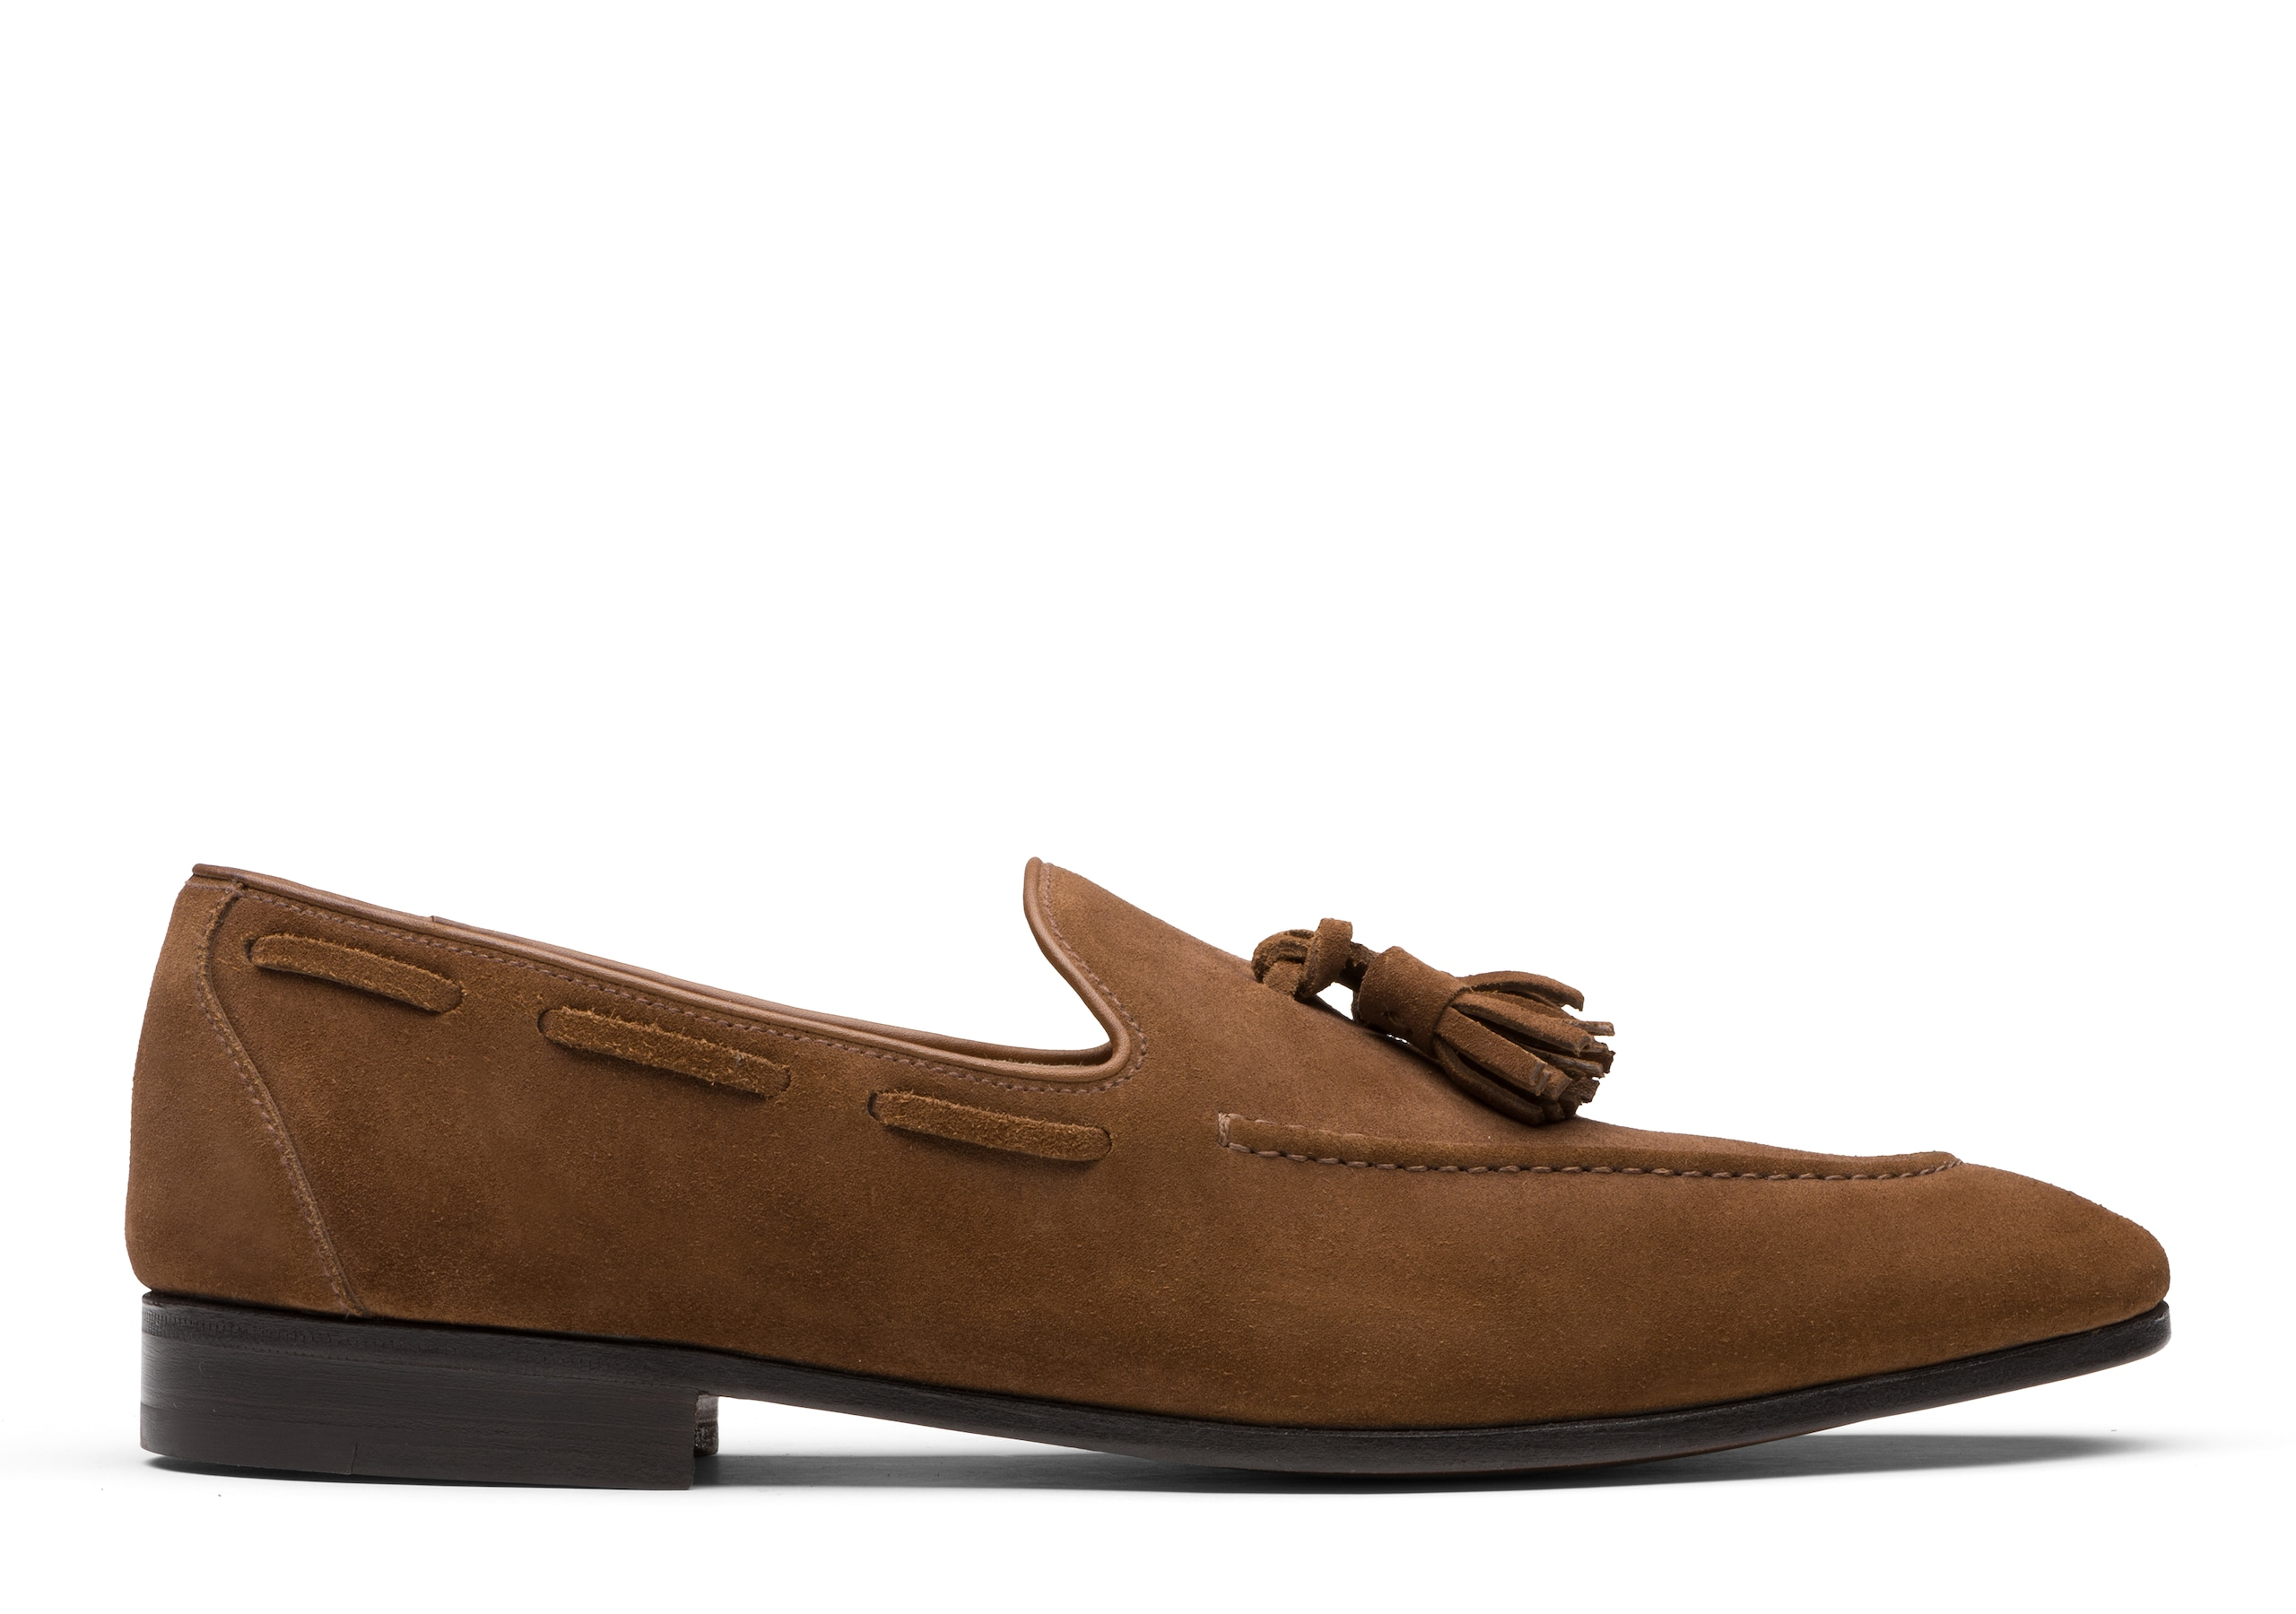 Doughton Church's Suede Loafer Sigar Brown